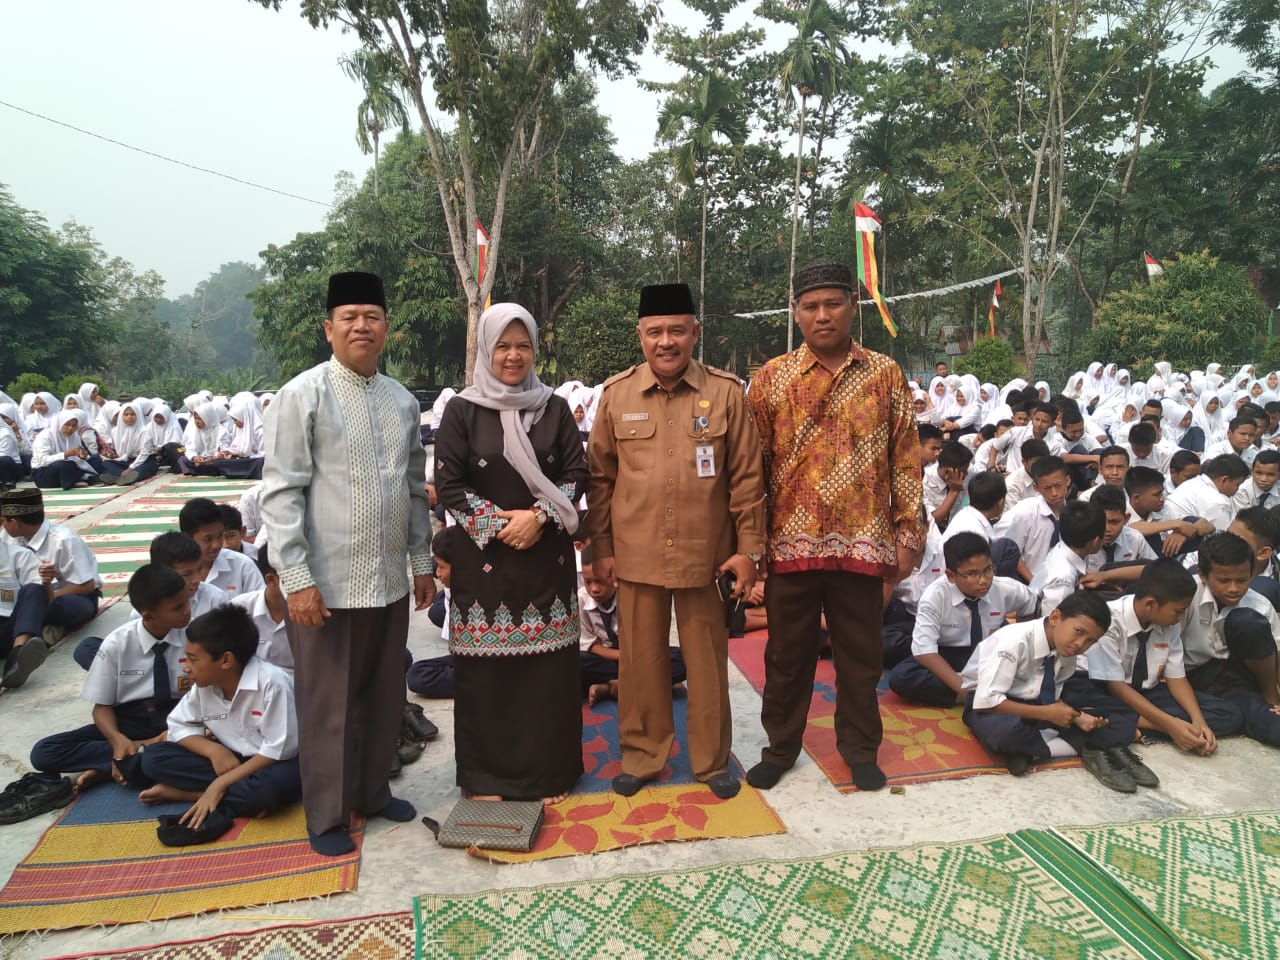 Perkuat Iman dan Takwa, SMPN 15 Pekanbaru Launching Program SOBIT